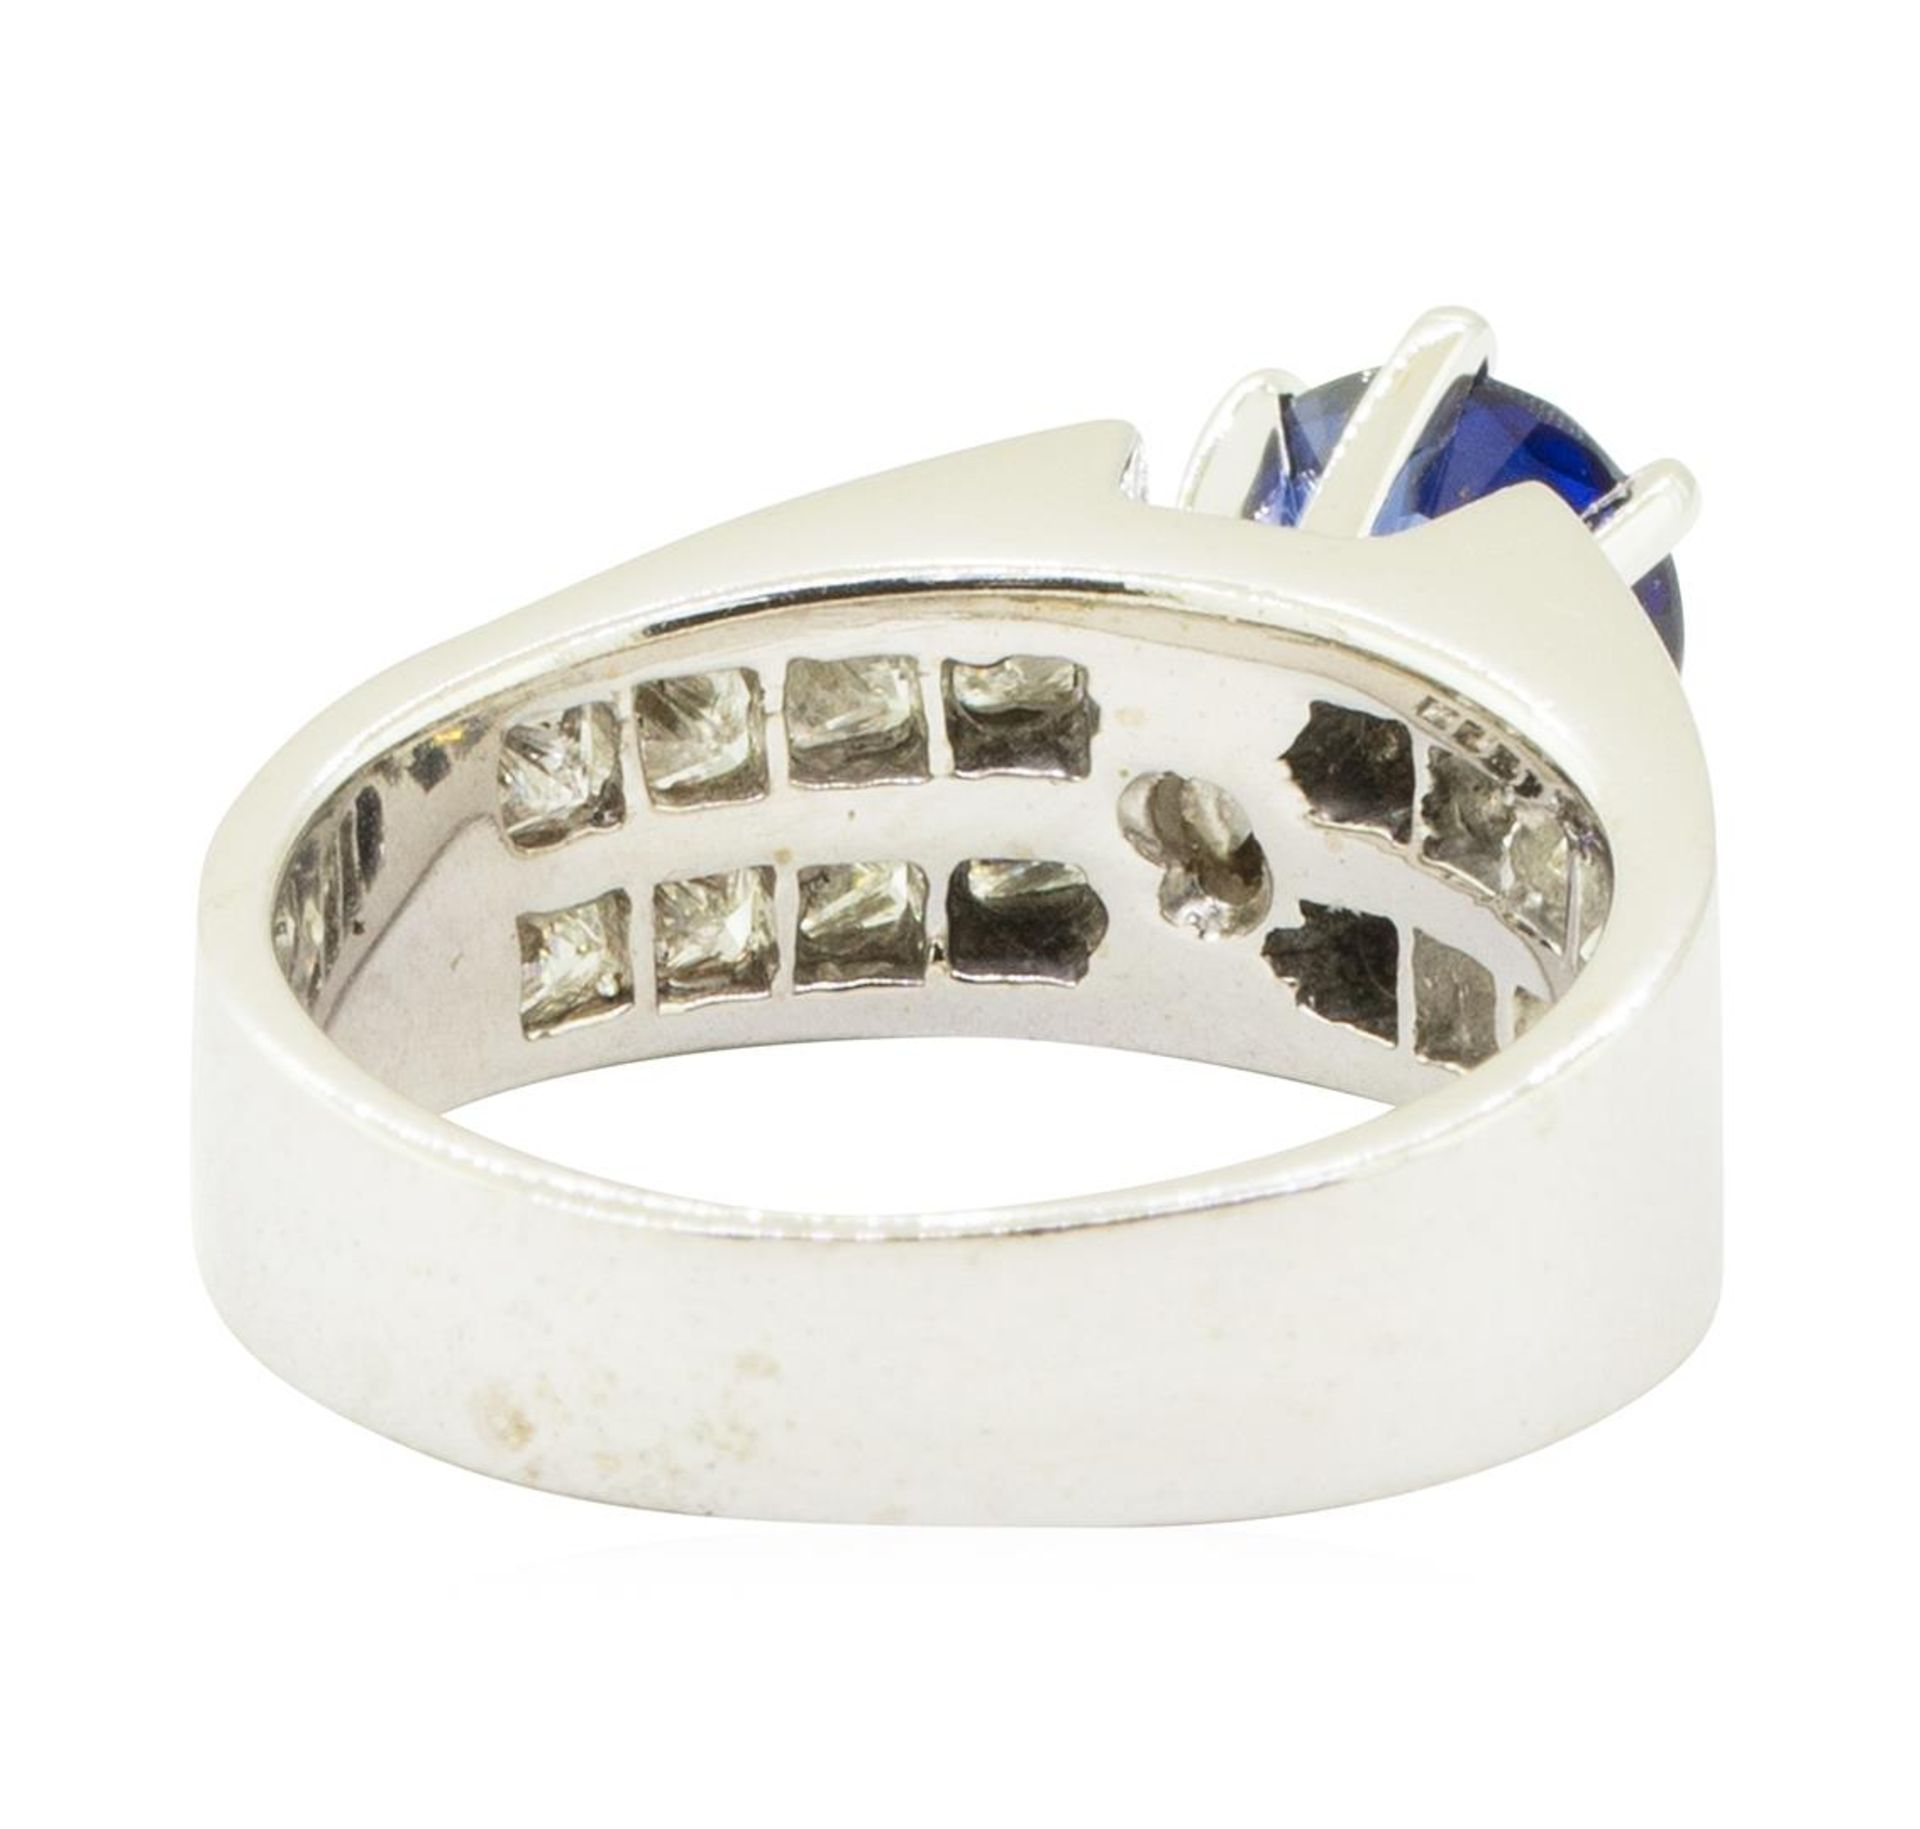 3.15 ctw Round Brilliant Blue Sapphire And Diamond Ring - 14KT White Gold - Image 3 of 5